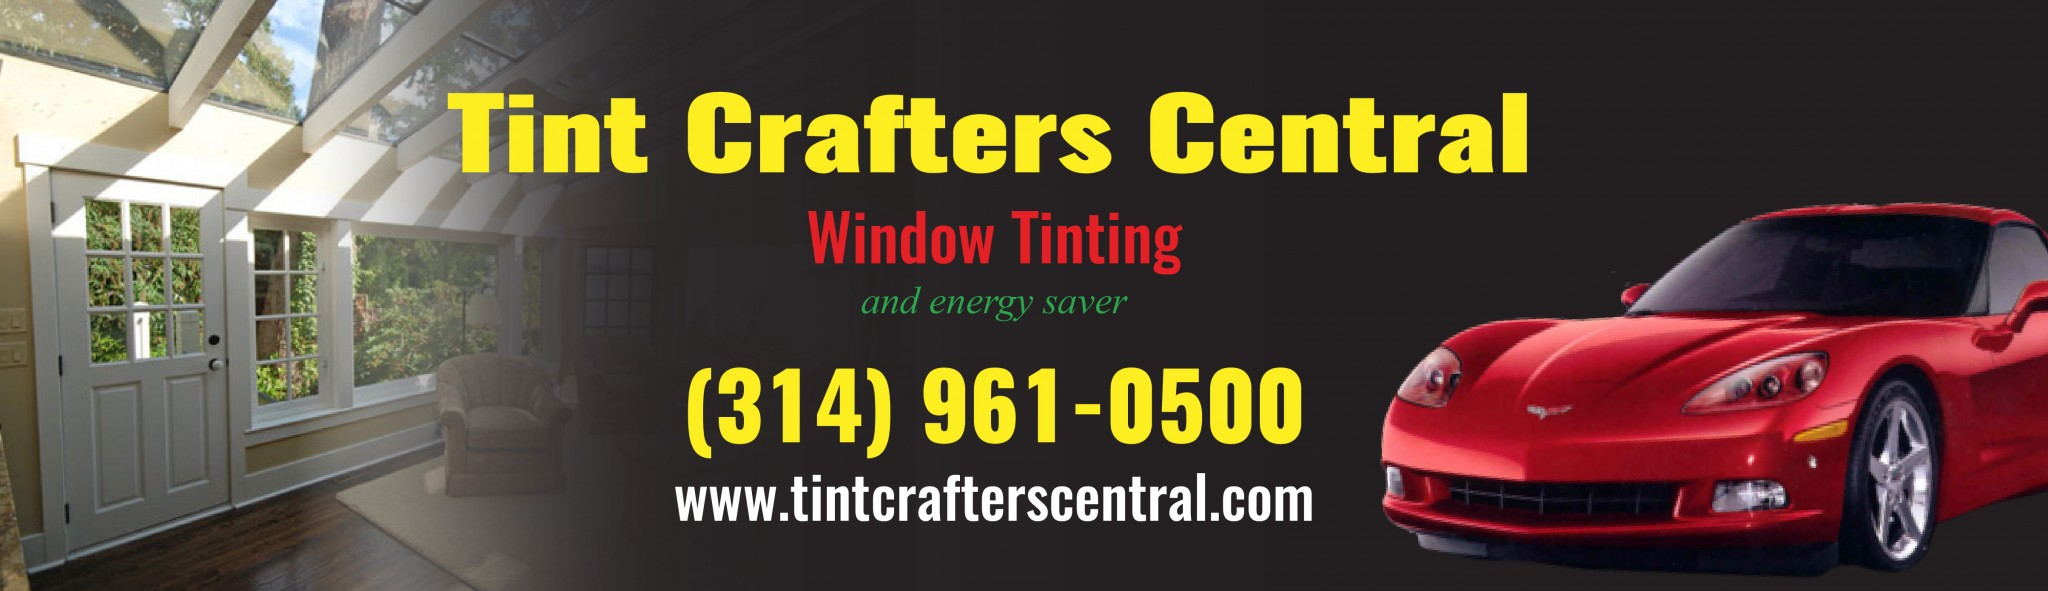 window-tinting-in-st-louis-by-tint-crafters-central-01